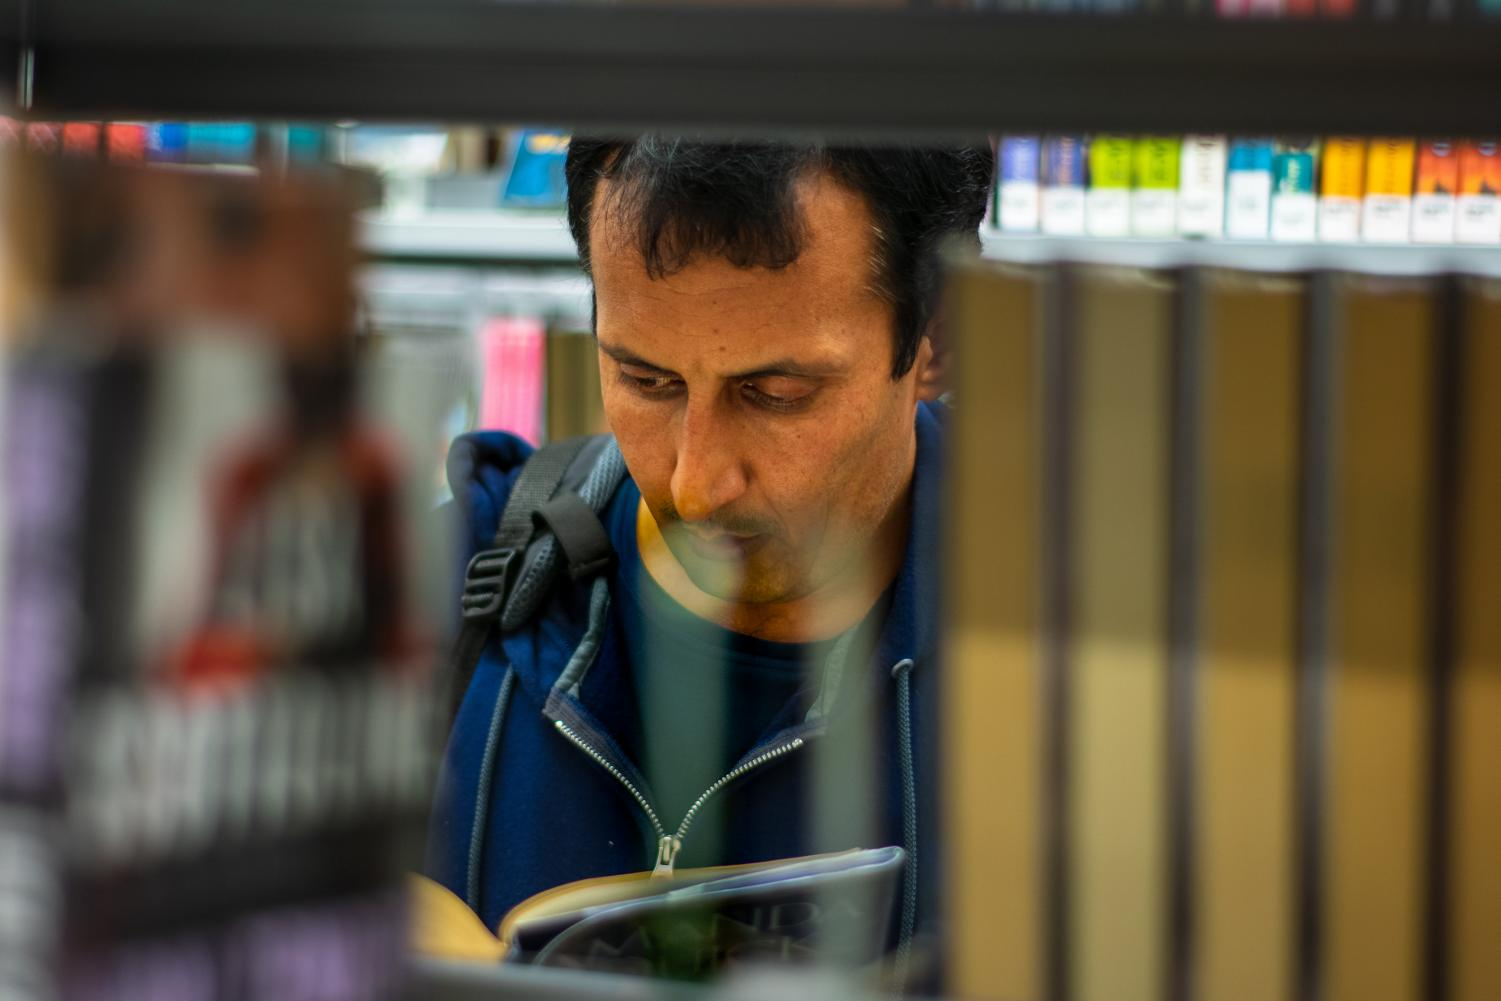 Hezbullah Akmal skims fiction novels at the Champaign Public Library on Monday. Akmal, an immigrant from Afghanistan, came to Champaign-Urbana last year when he was being threatened after working with the American government.